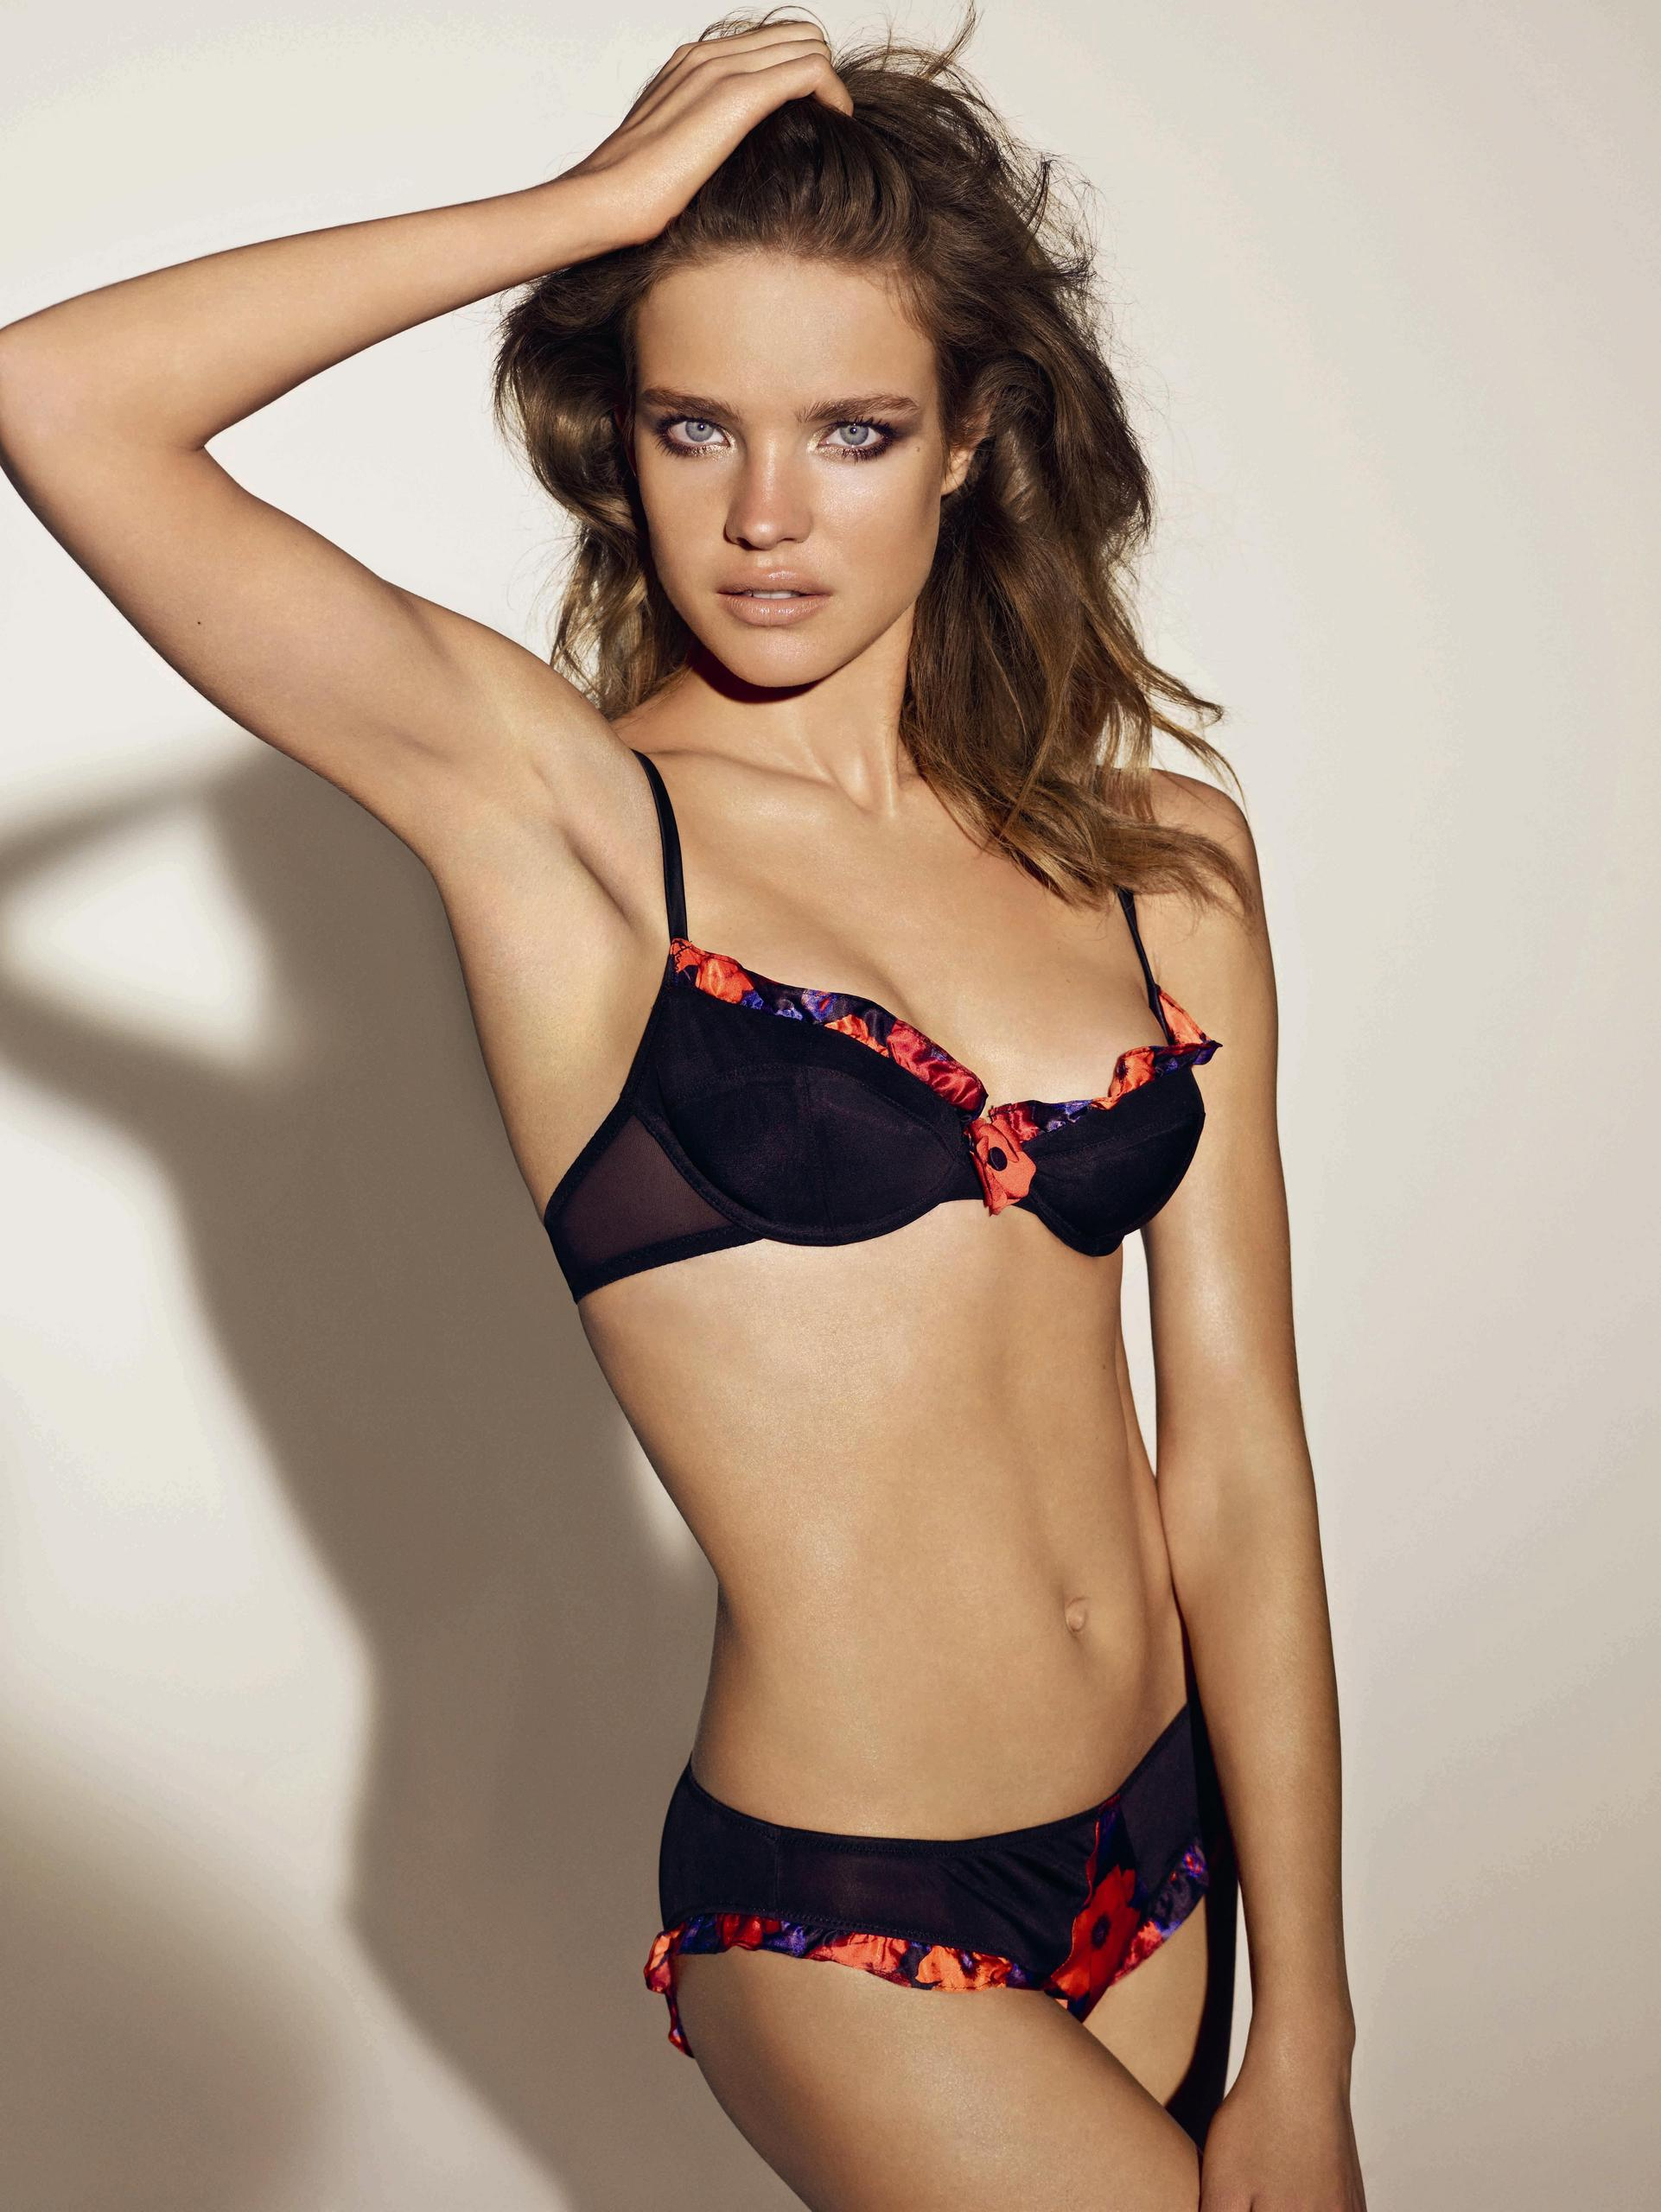 hot women natalia vodianova